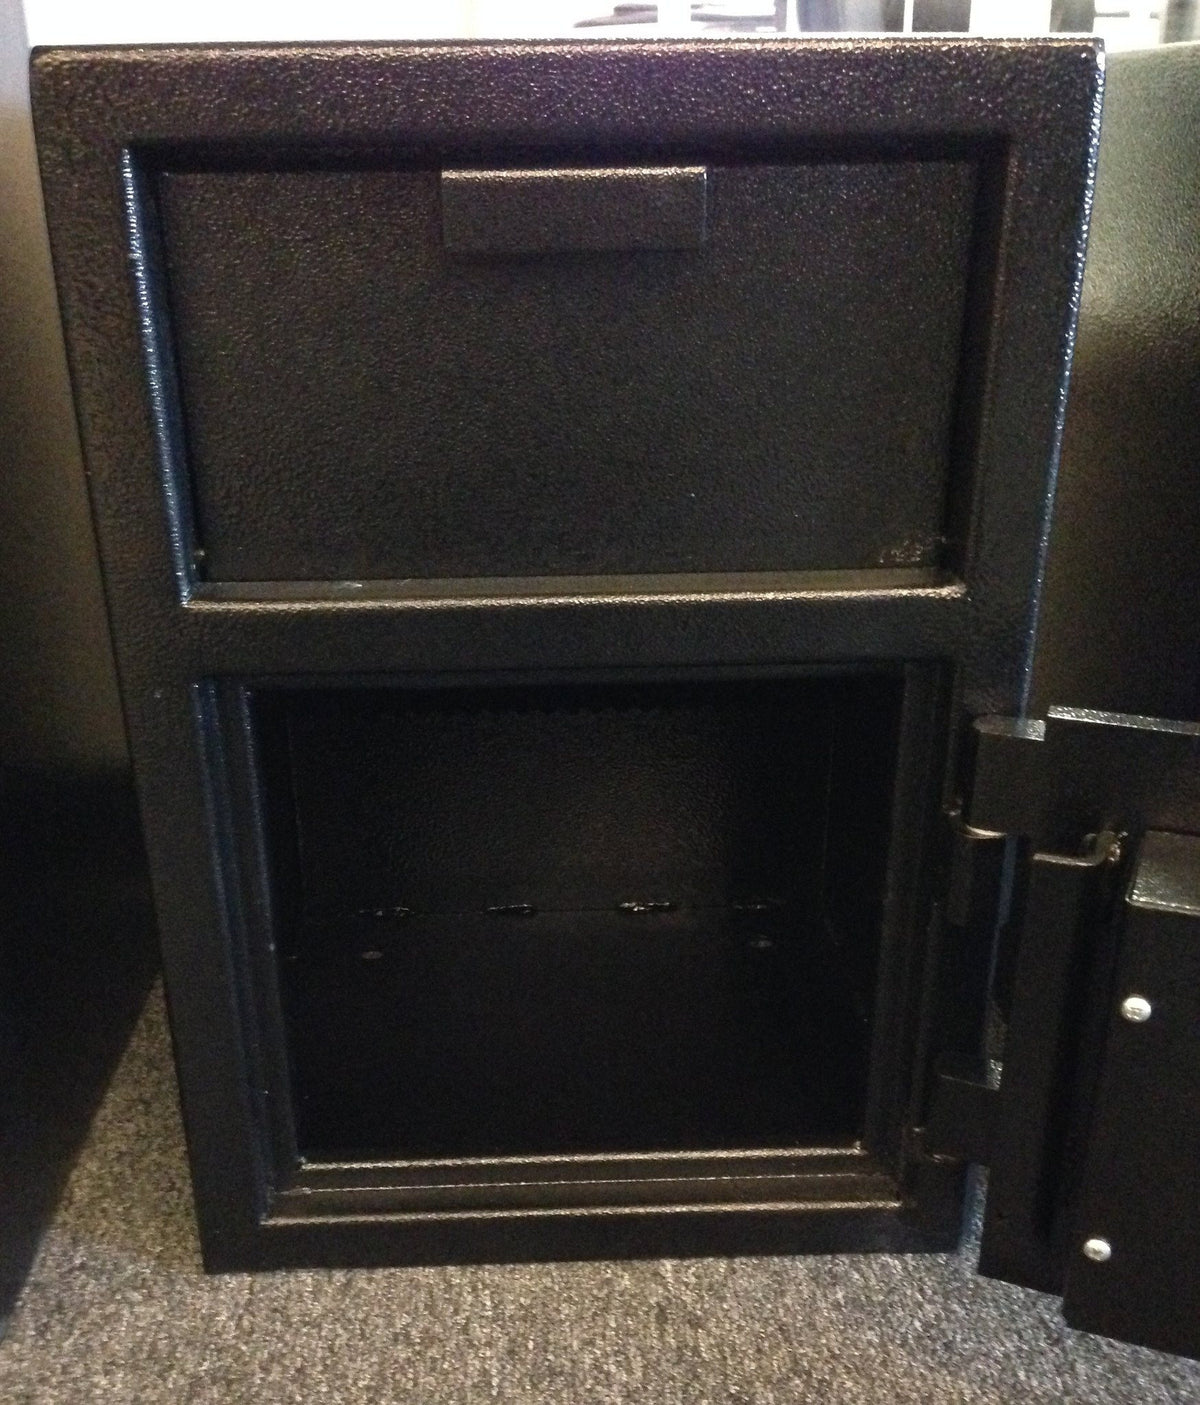 SafeandVaultStore FLH201414K Depository Safe With Key Lock